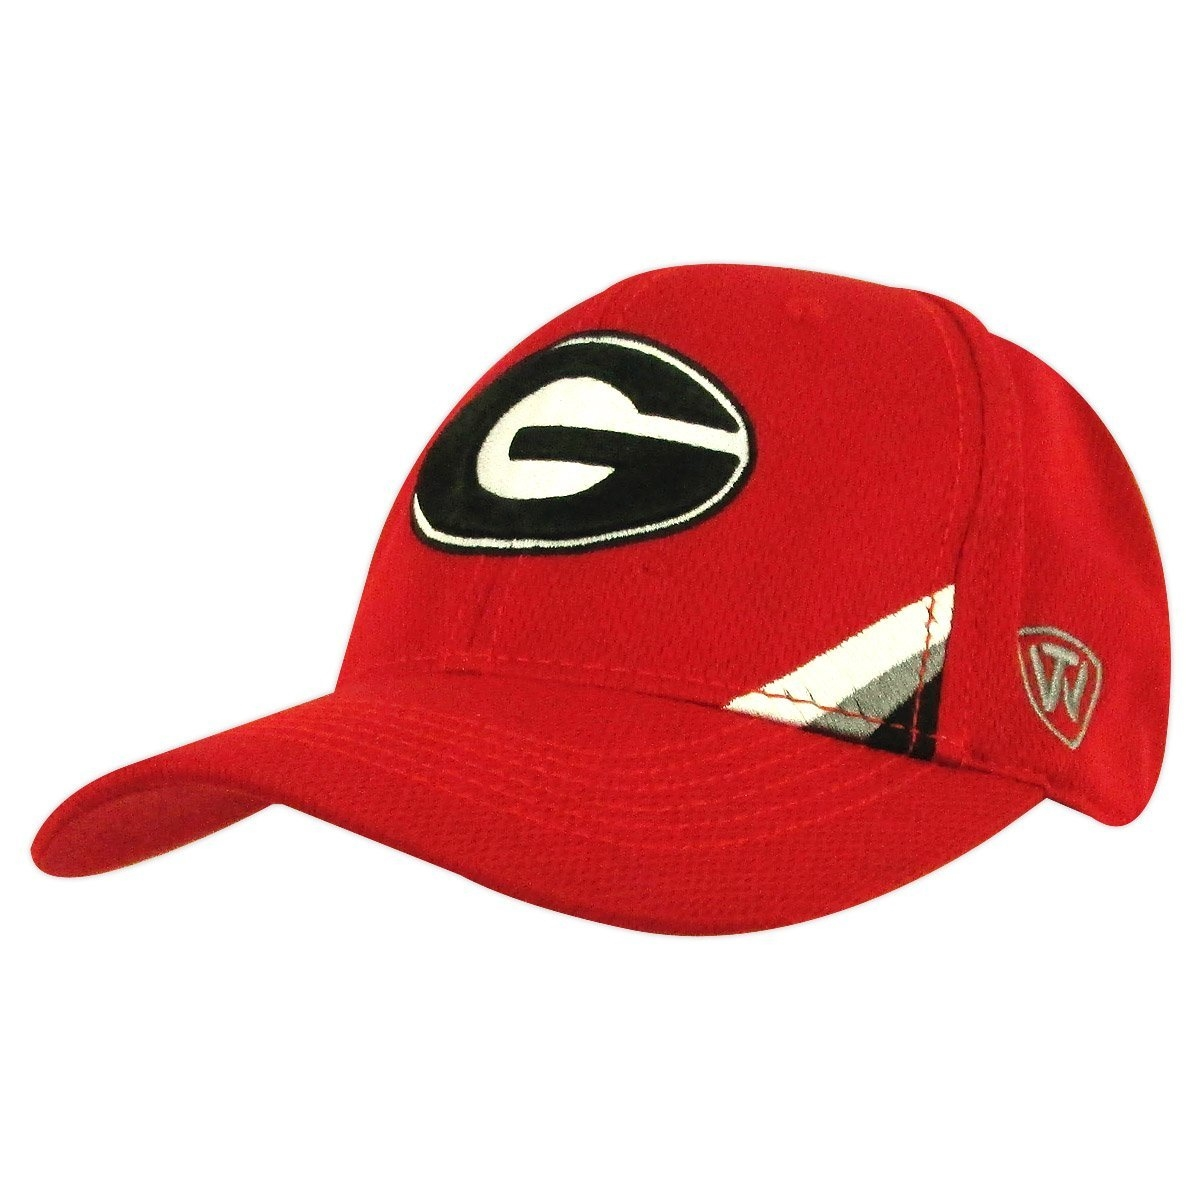 08f17d9b247 Georgia Bulldogs Wedge Red One-Fit Hat